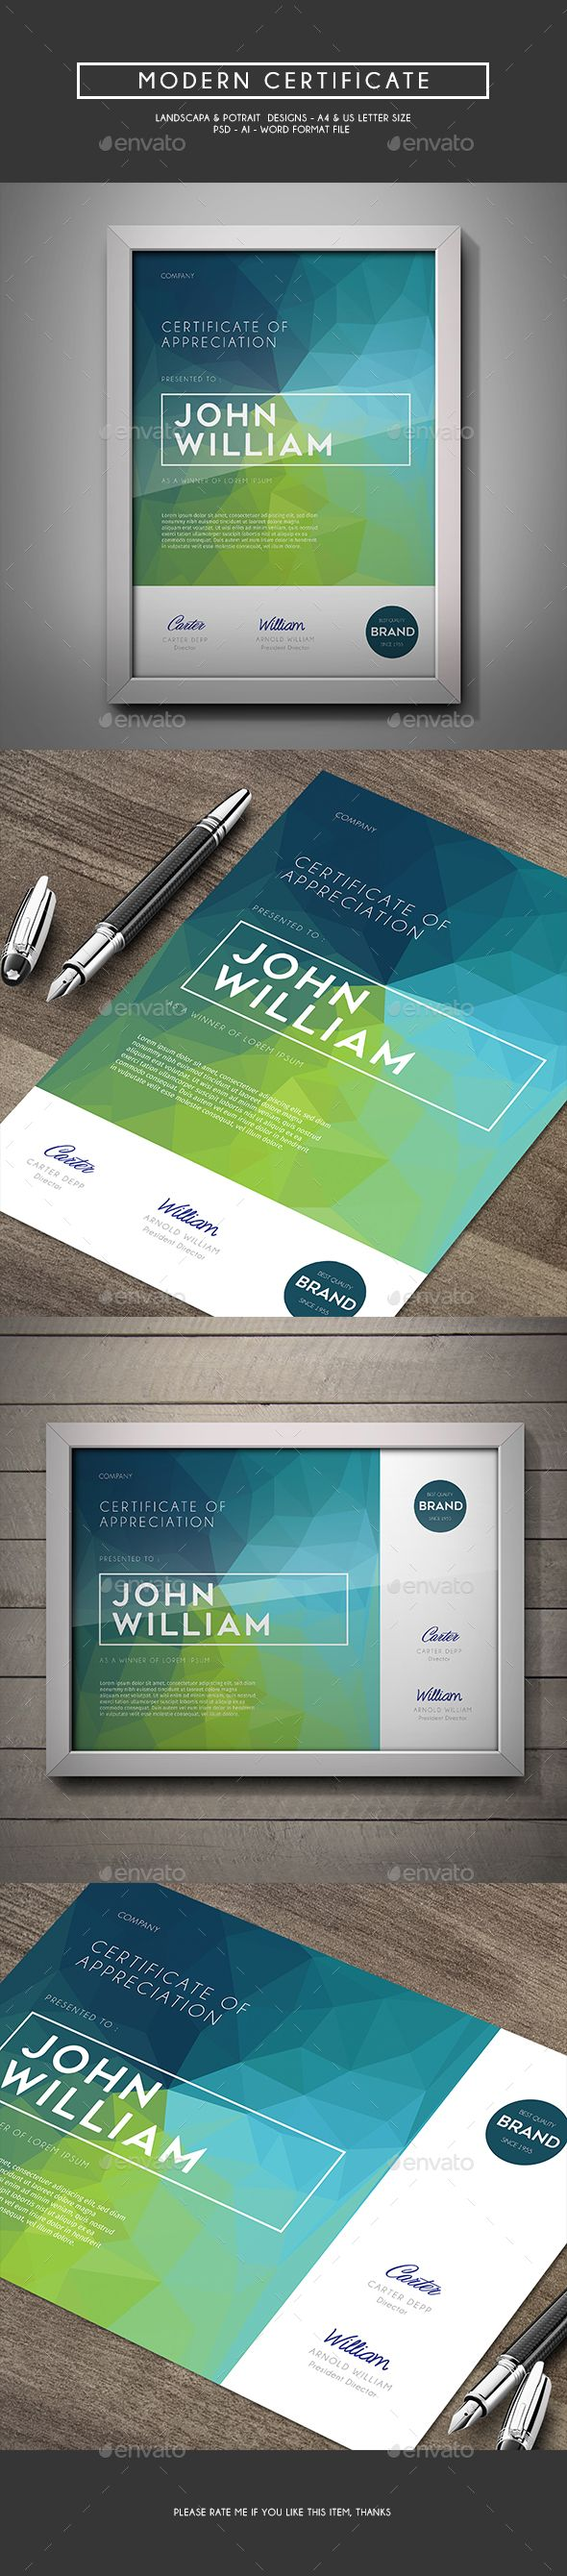 Modern Certificate Template PSD, Vector AI #design Download: http://graphicriver.net/item/modern-certificate/14525170?ref=ksioks